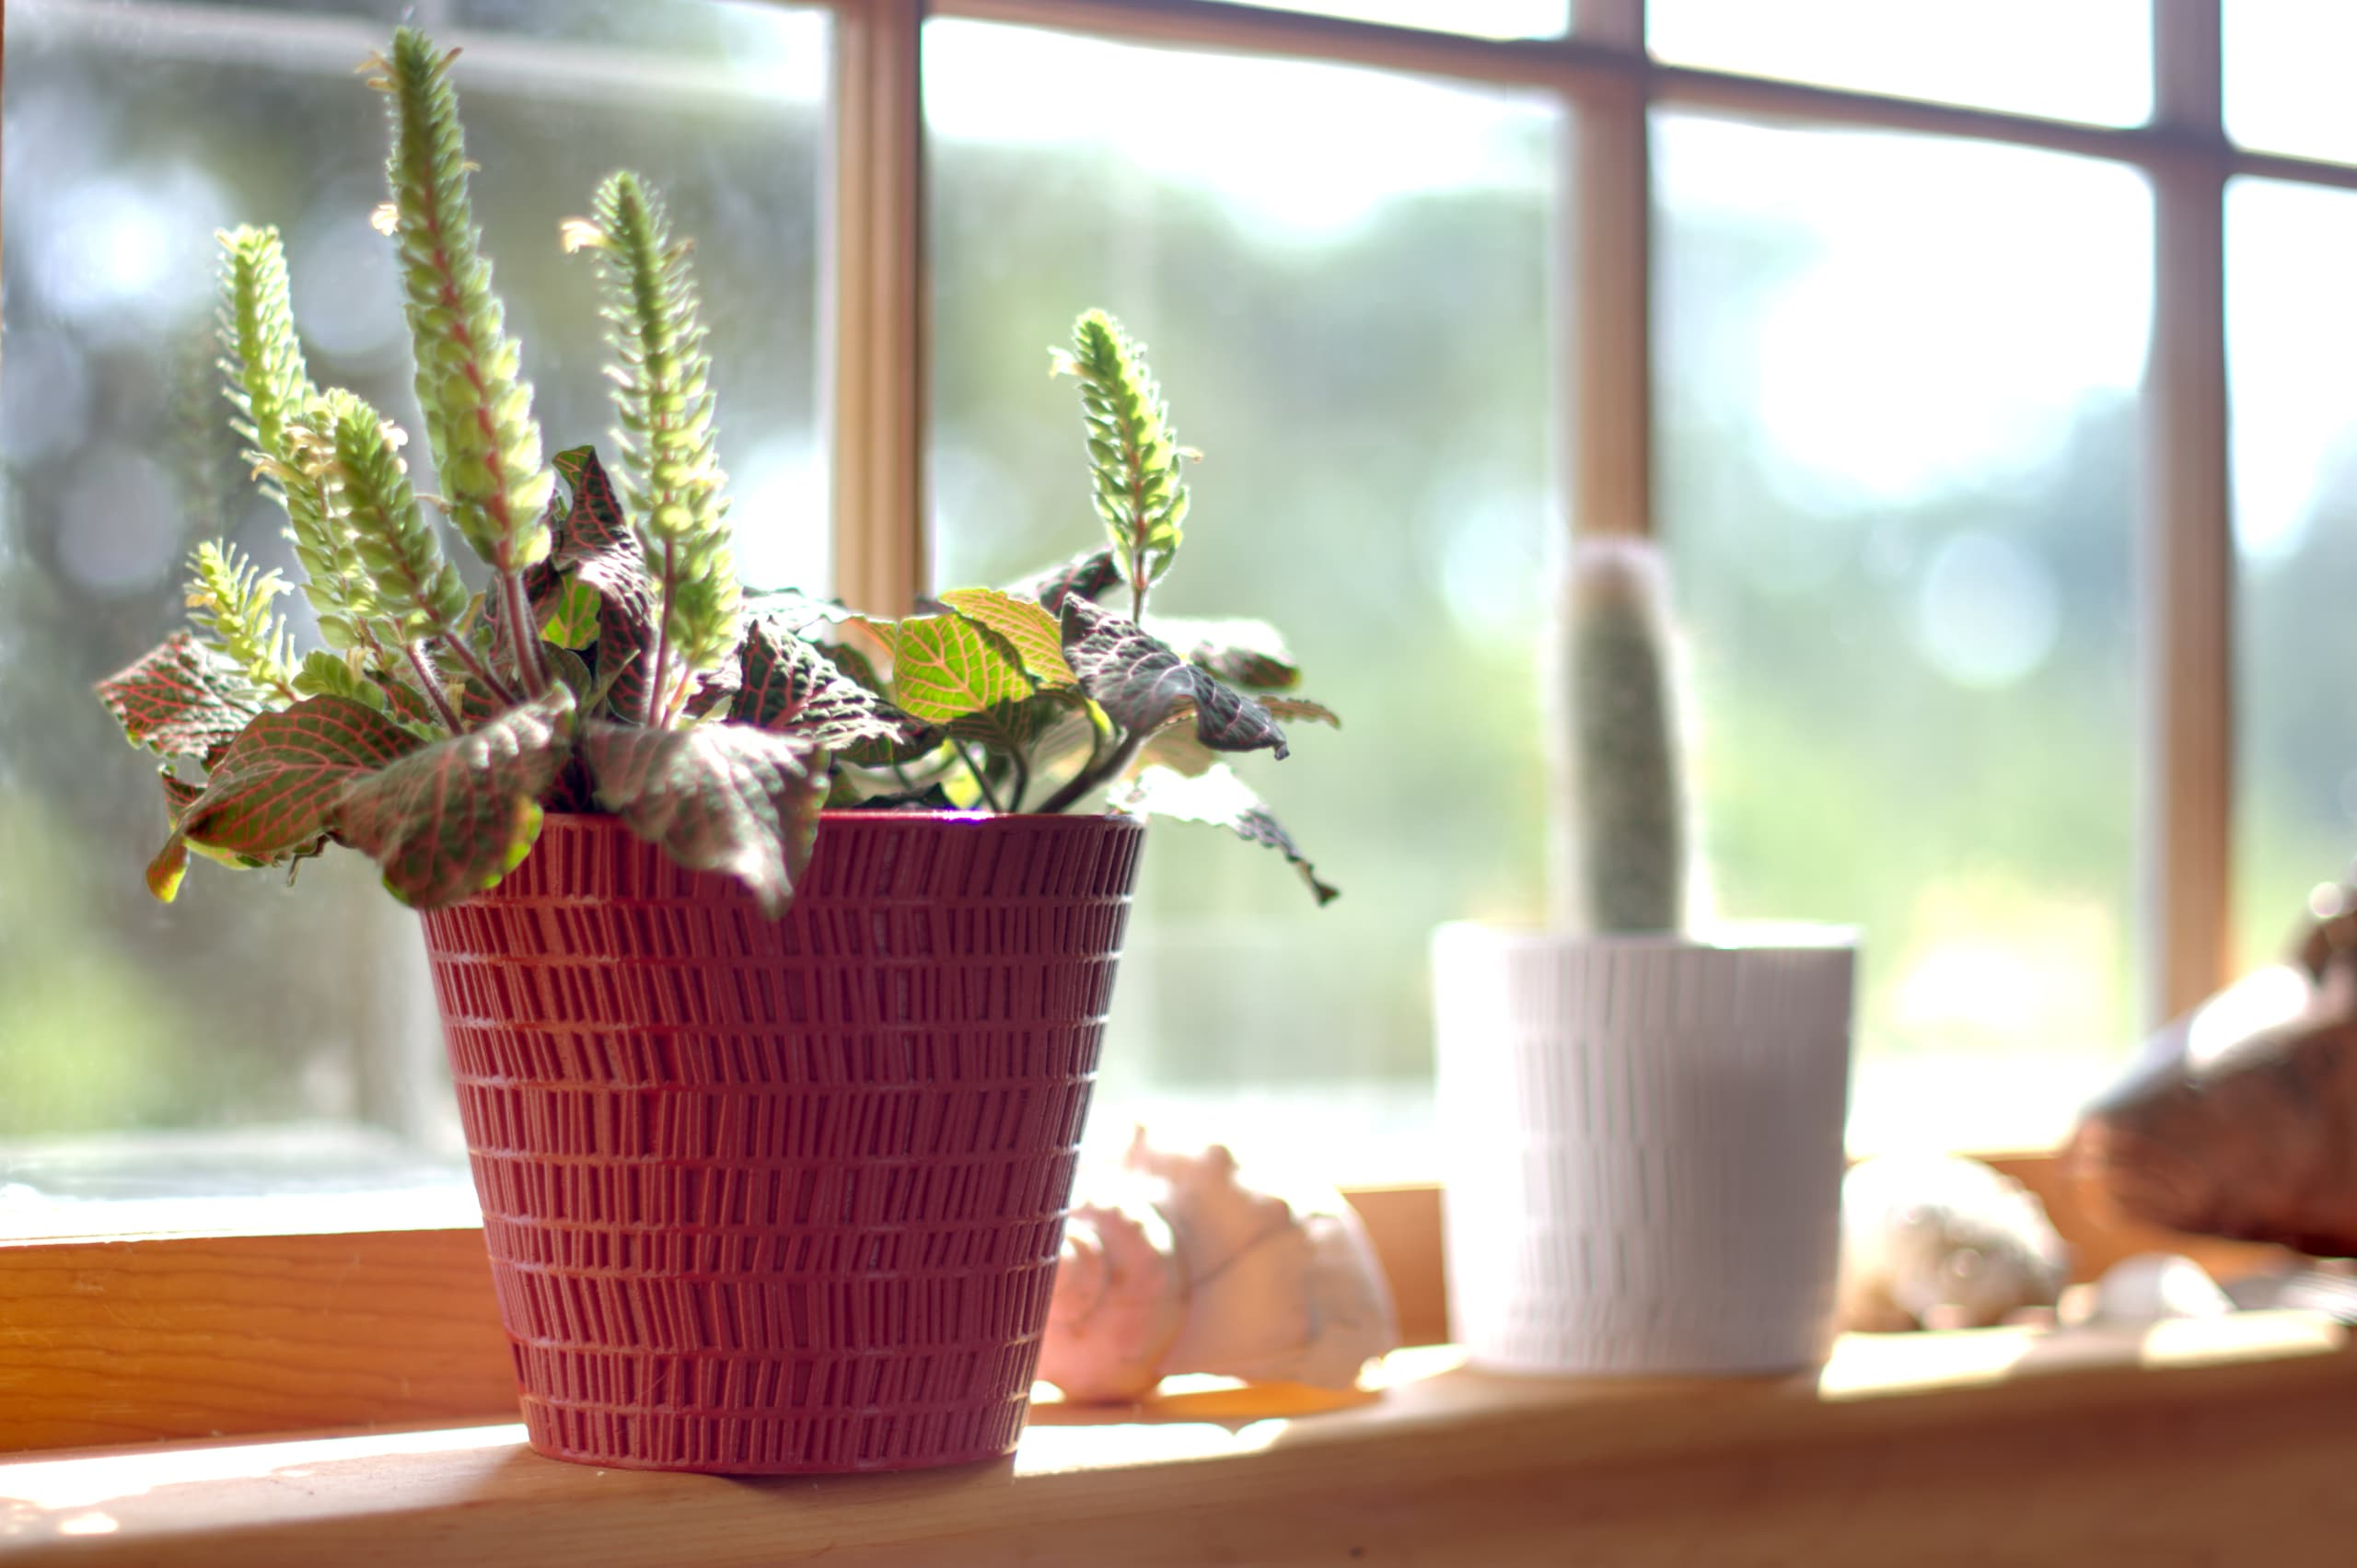 Red pot with a mosaic-like texture and tapered sides, holding a plant on a windowsill next to a smaller planter with a similar texture and straight sides, holding a cactus.